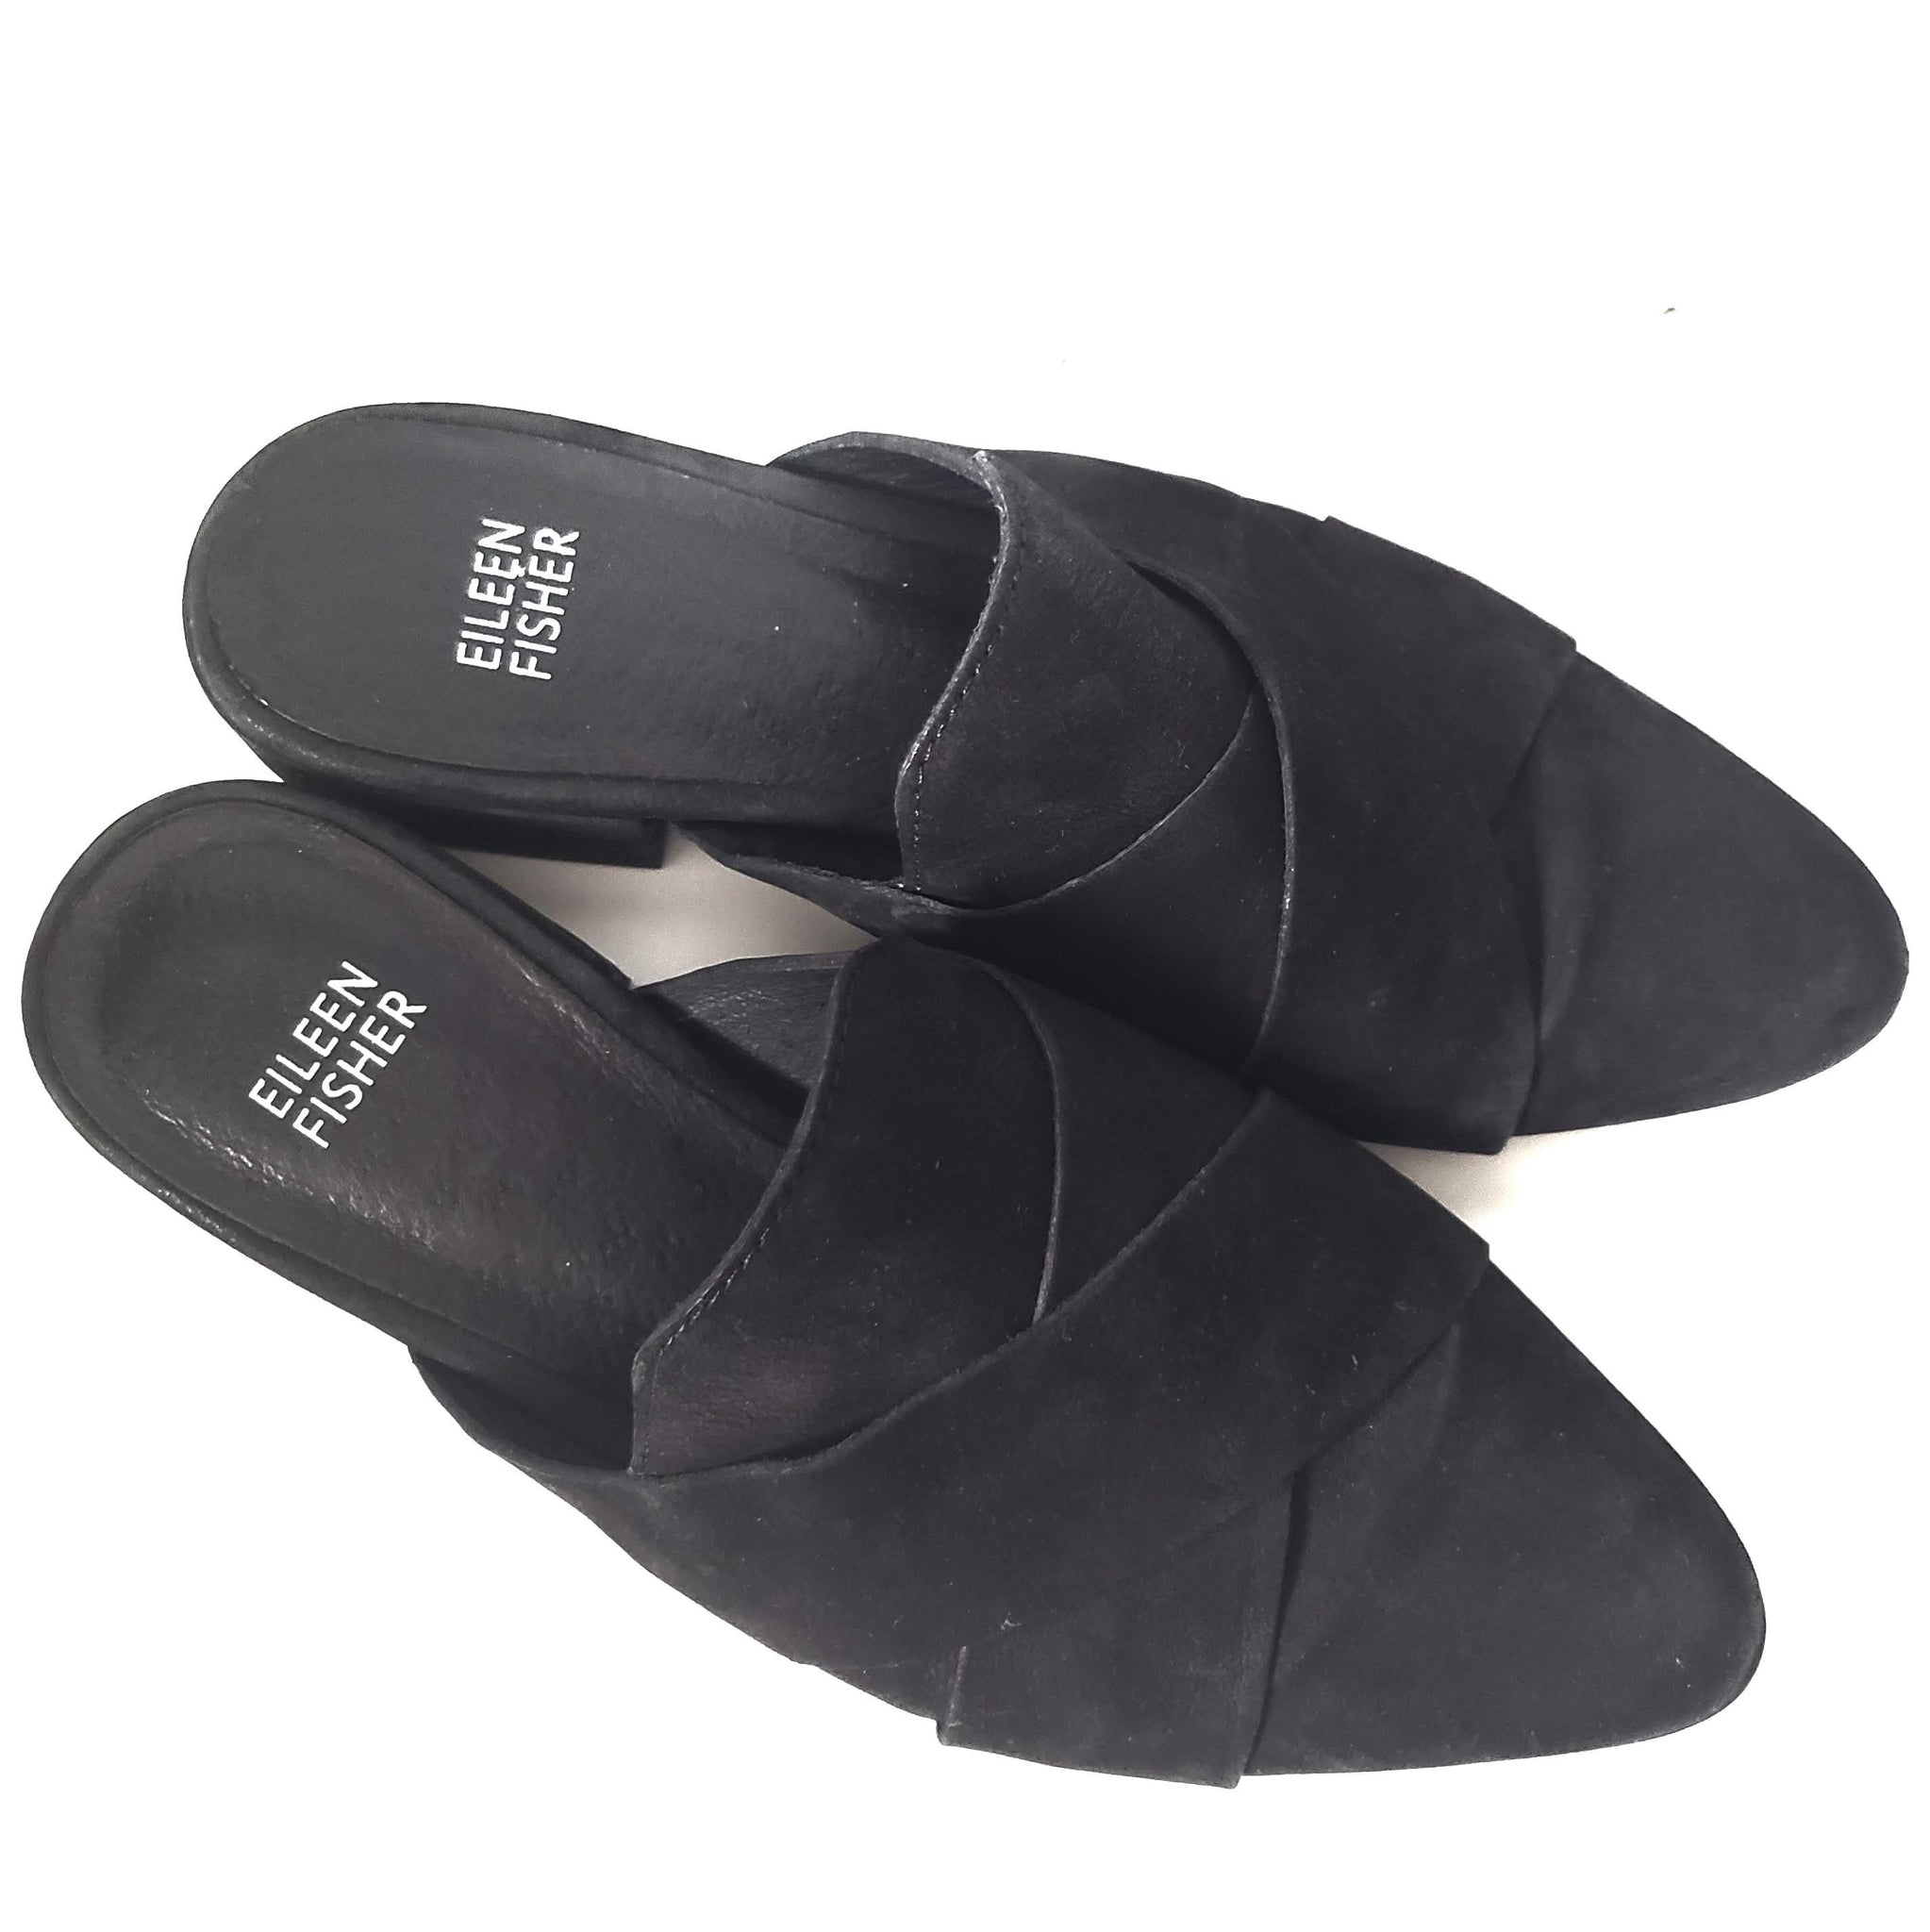 Eileen Fisher Black Mules Flats Loafers Size 7